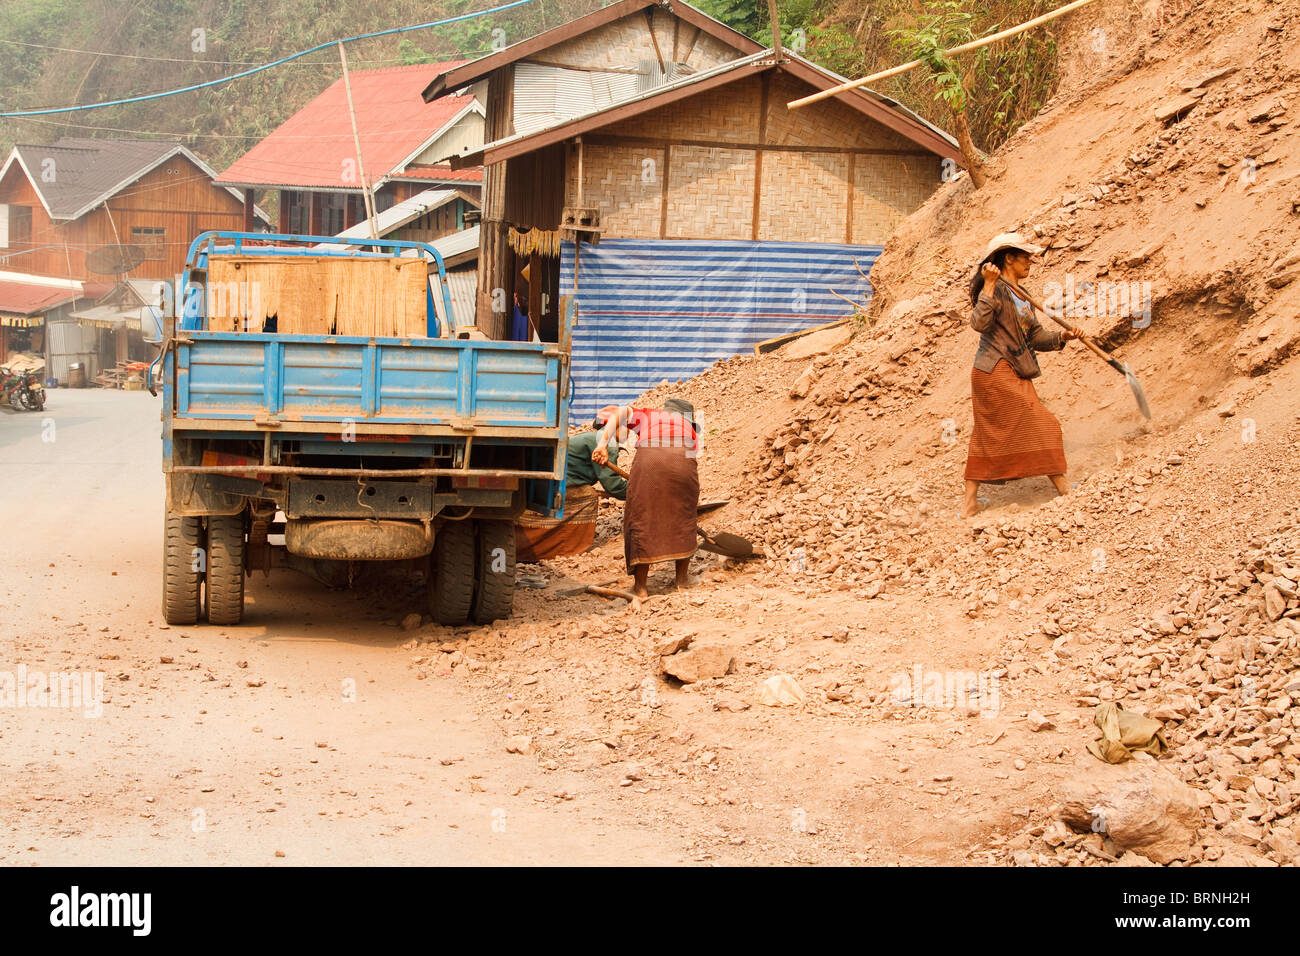 Two women wearing skirts shoveling dirt into a truck at a construction site in Laos - Stock Image